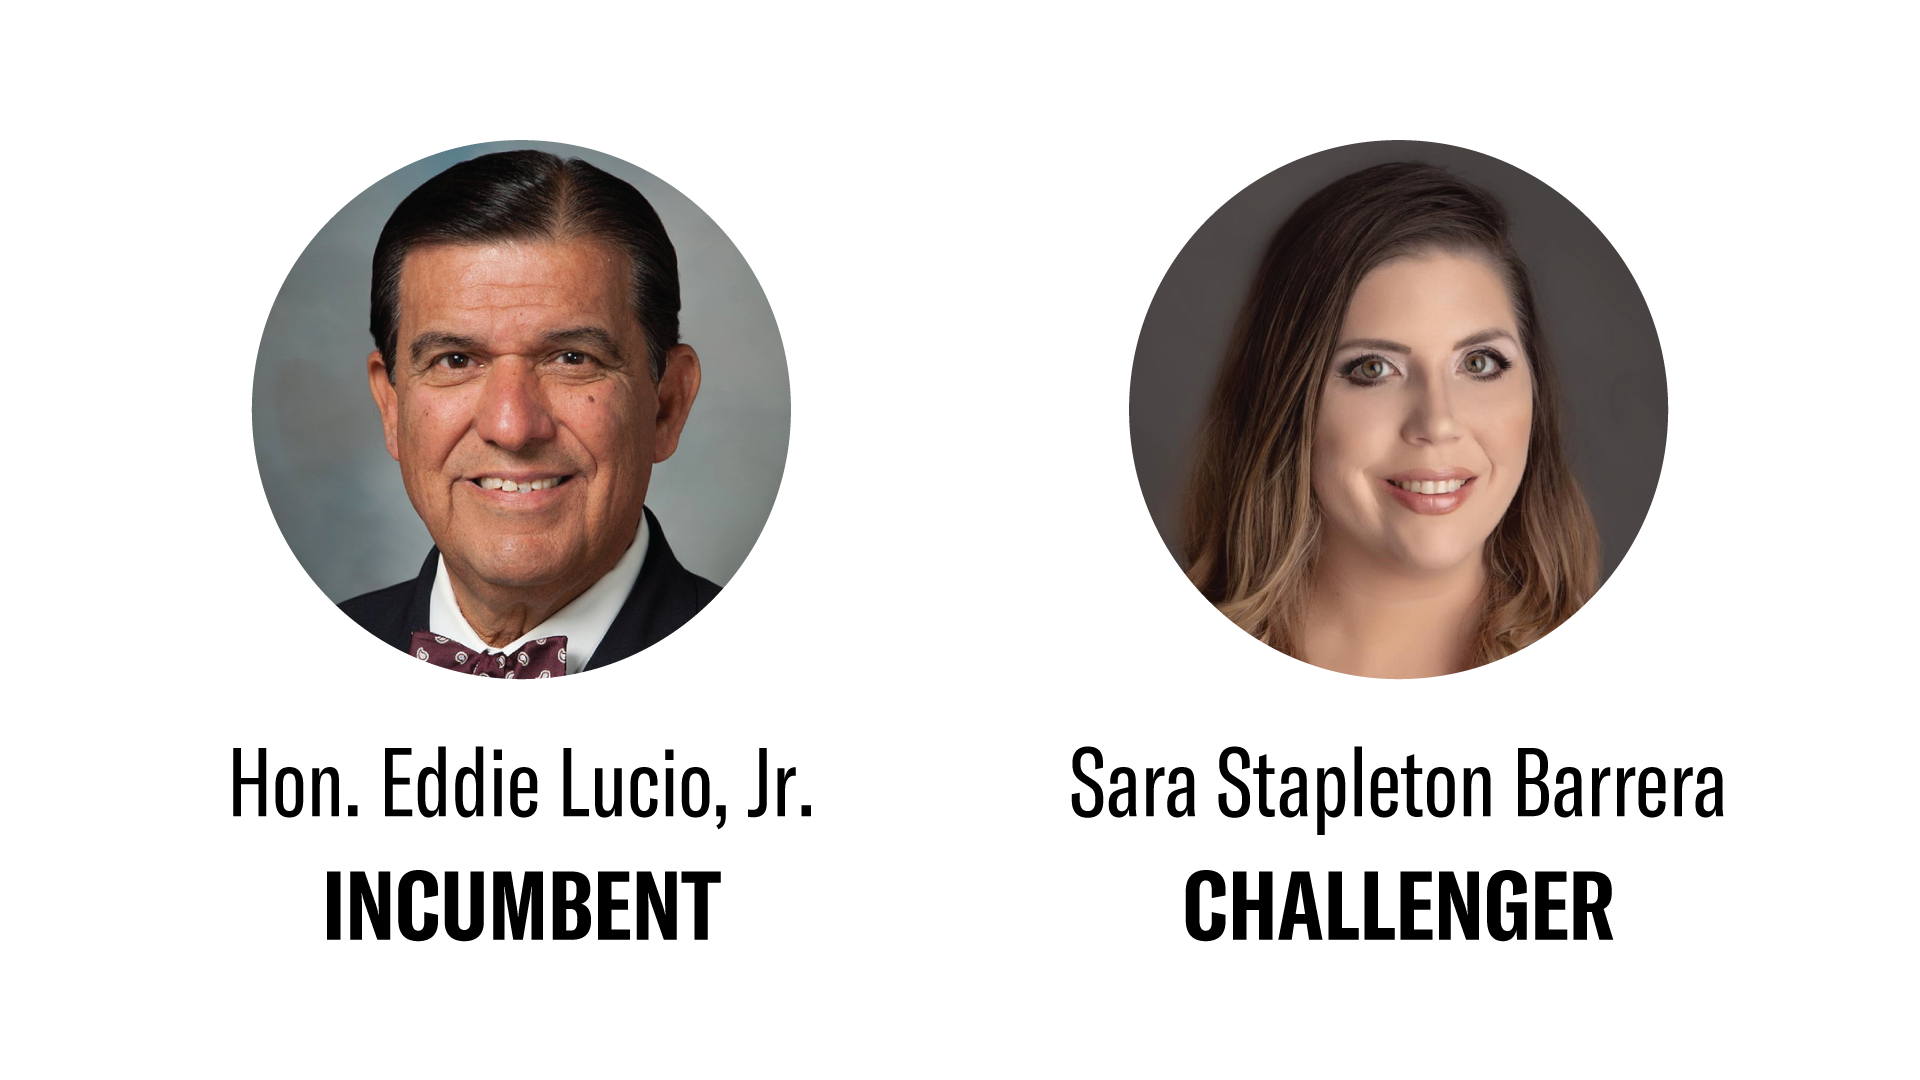 Cropped photos of the candidates running for TX Senate District 27, including: Hon. Eddie Lucio Jr. and Sara Stapleton Barrera.